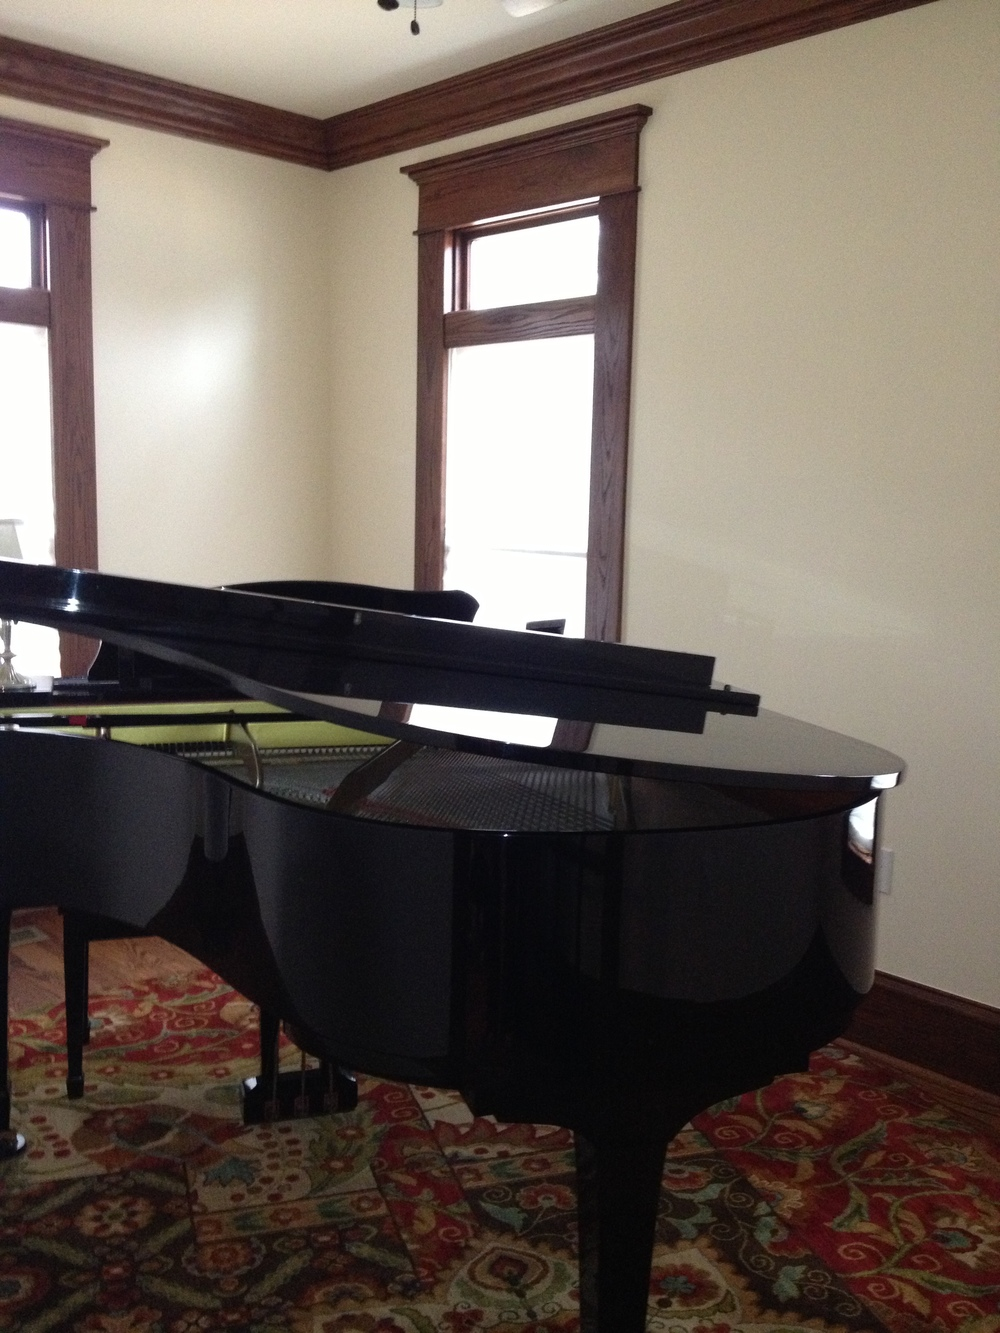 photo.JPGpiano room2 - Copy.jpg